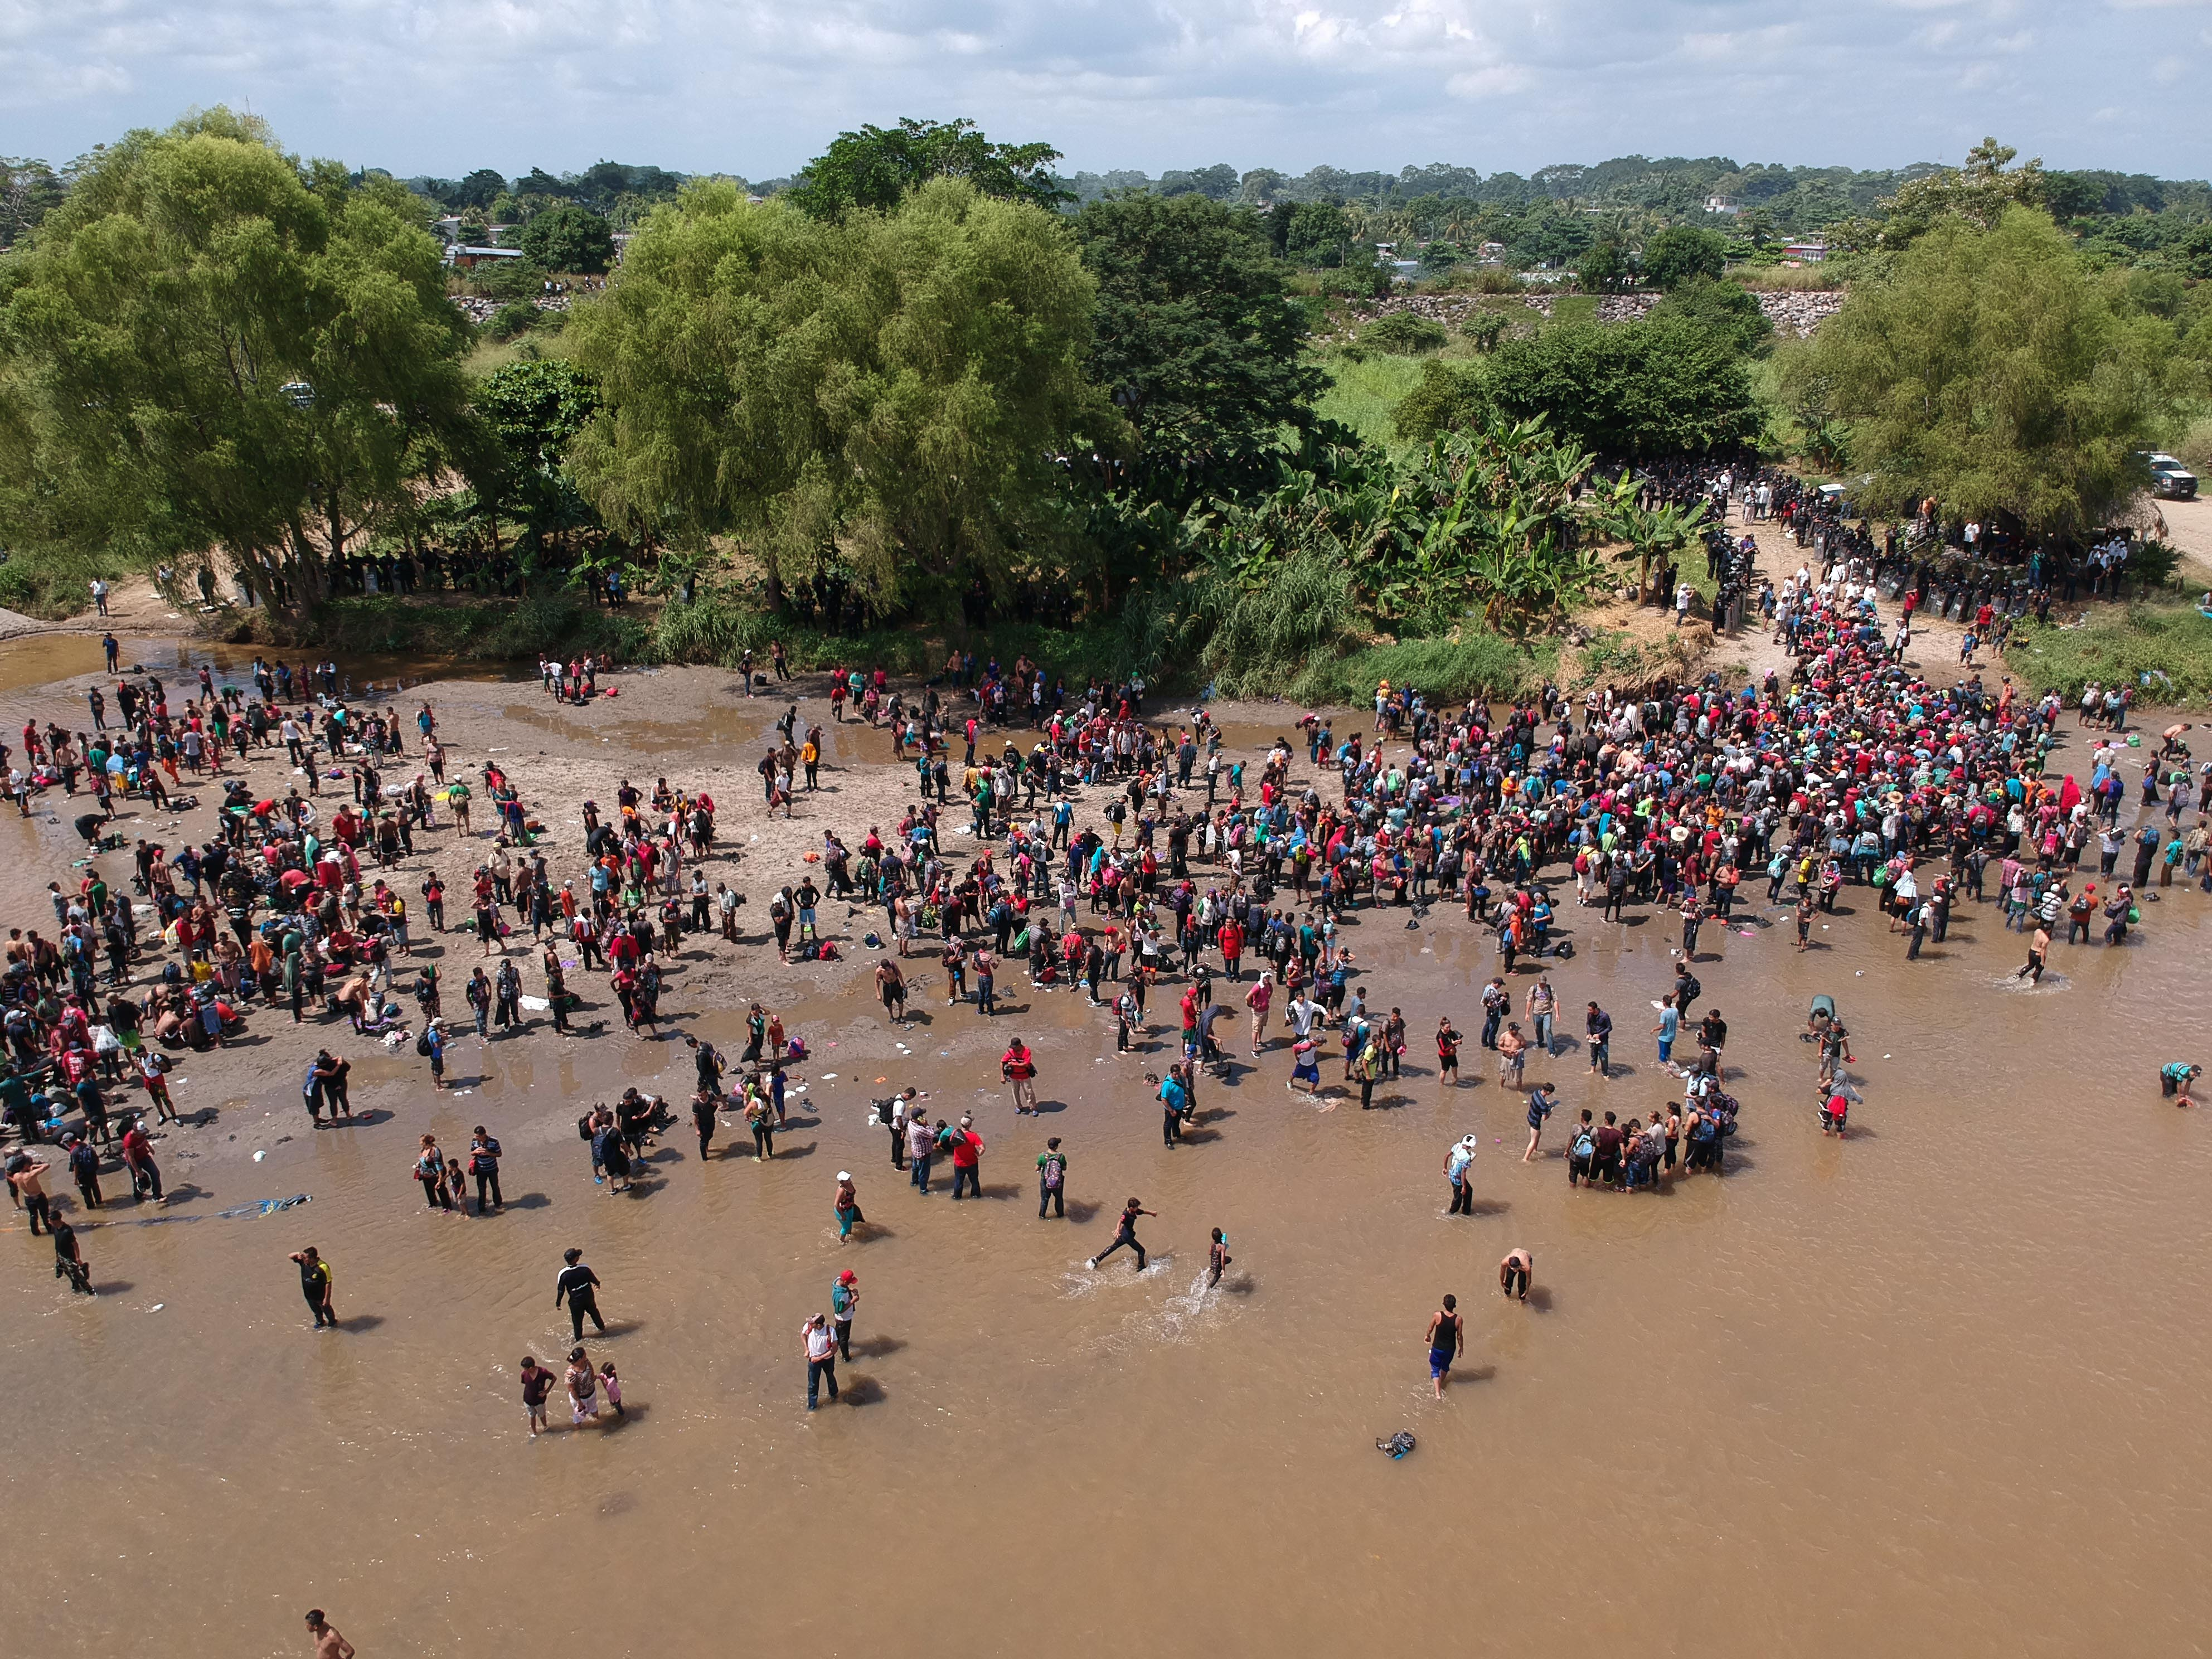 Migrants reaching Mexico after crossing the Suchiate River from Tecun Uman in Guatemala to Ciudad Hidalgo in Mexico